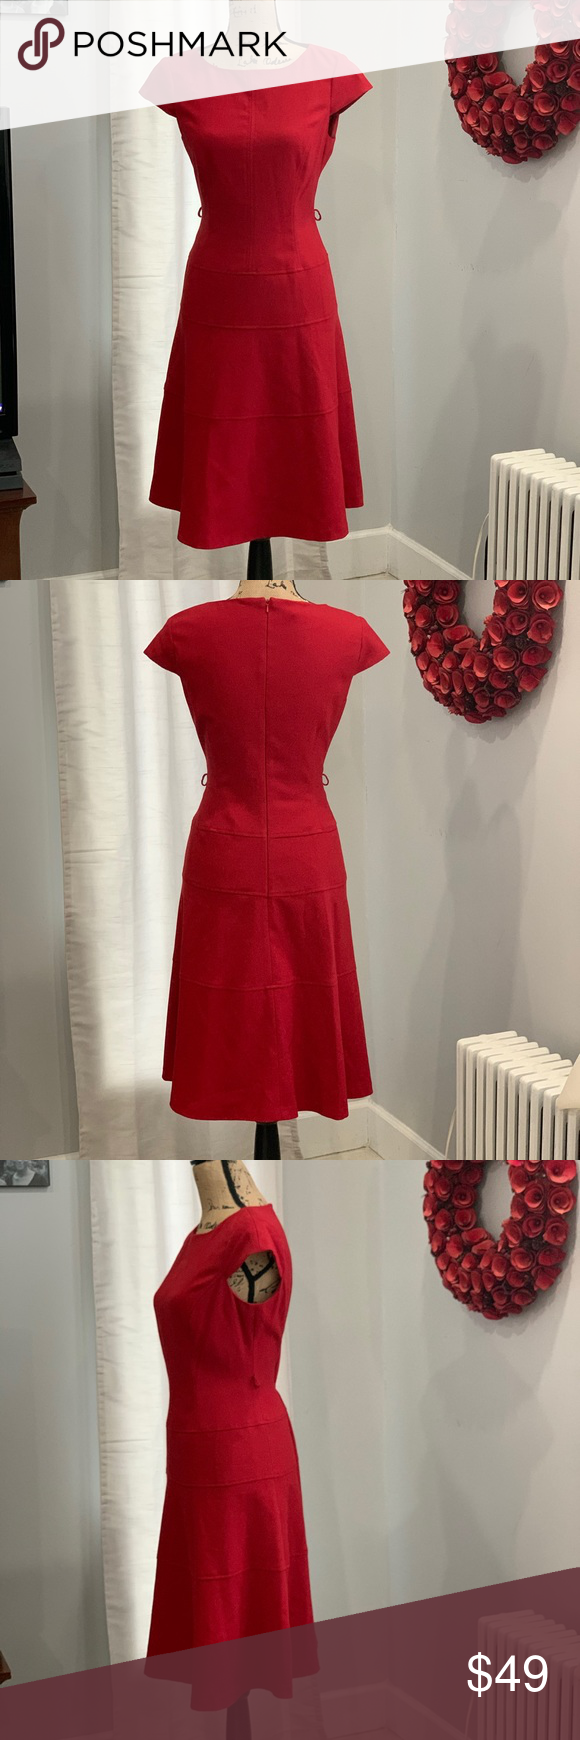 Red Dress Size 8